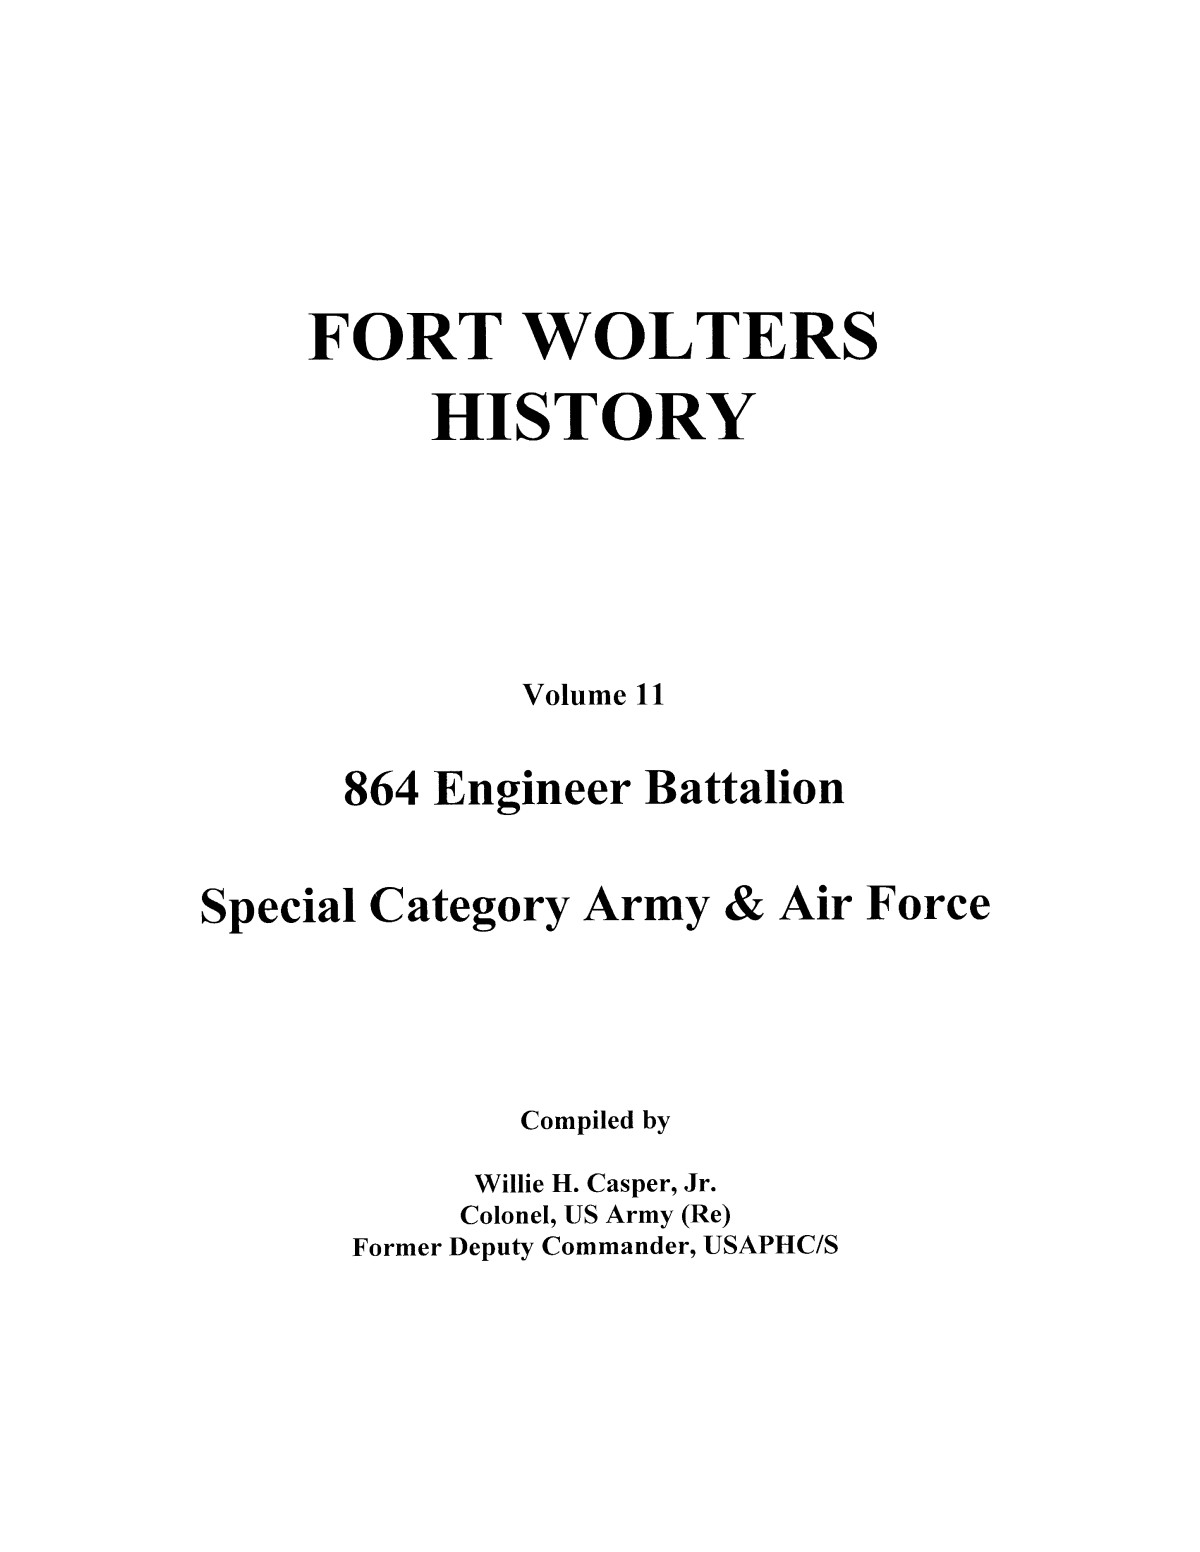 Pictorial History of Fort Wolters, Volume 11: 864 Engineer Battalion, Special Category Army and Air Force                                                                                                      [Sequence #]: 1 of 273